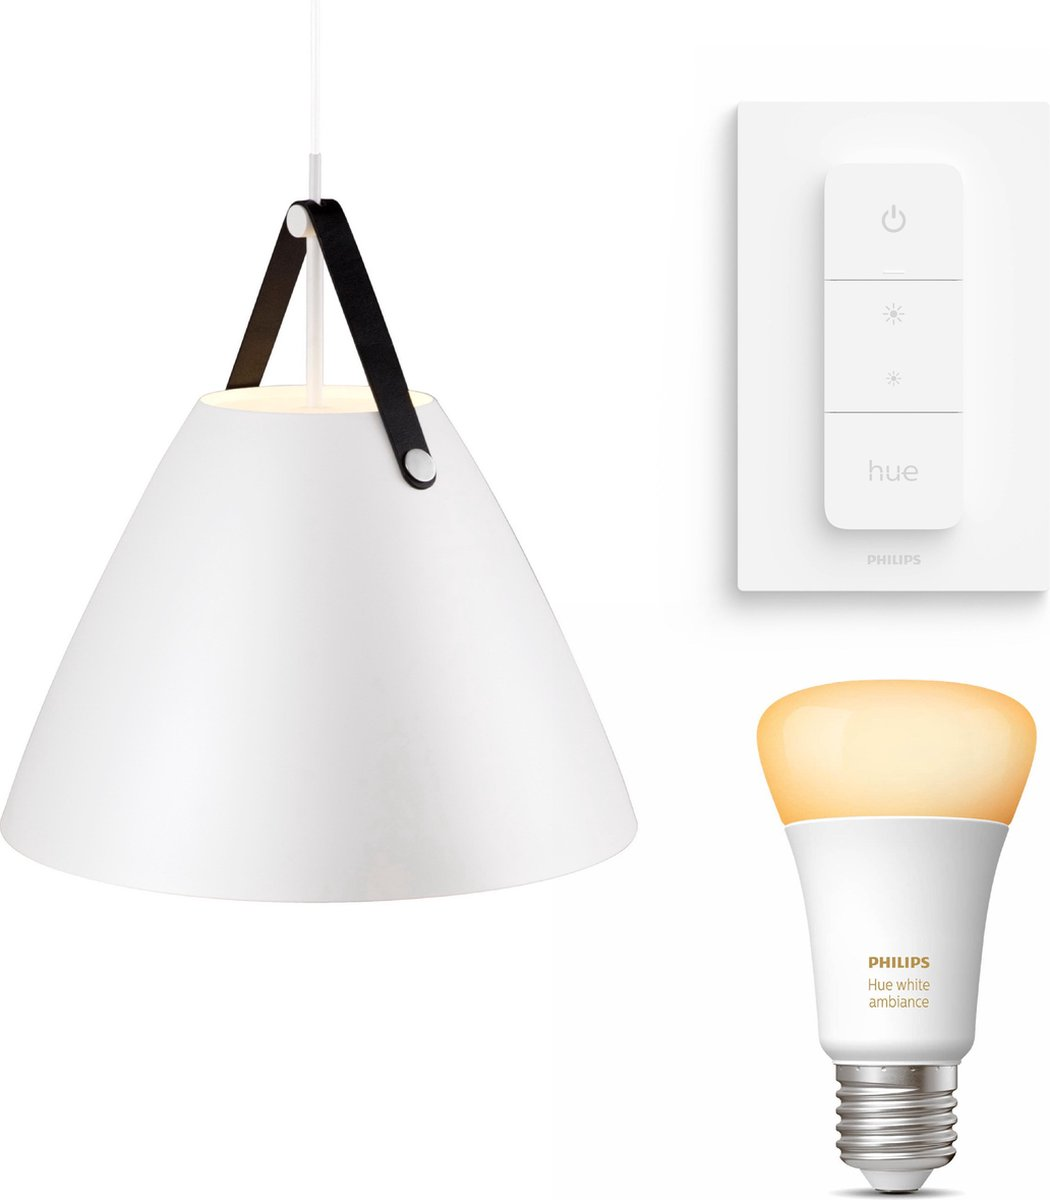 Nordlux Strap 48 hanglamp - LED - wit - 1 lichtpunt - Incl. Philips Hue White Ambiance E27 & dimmer